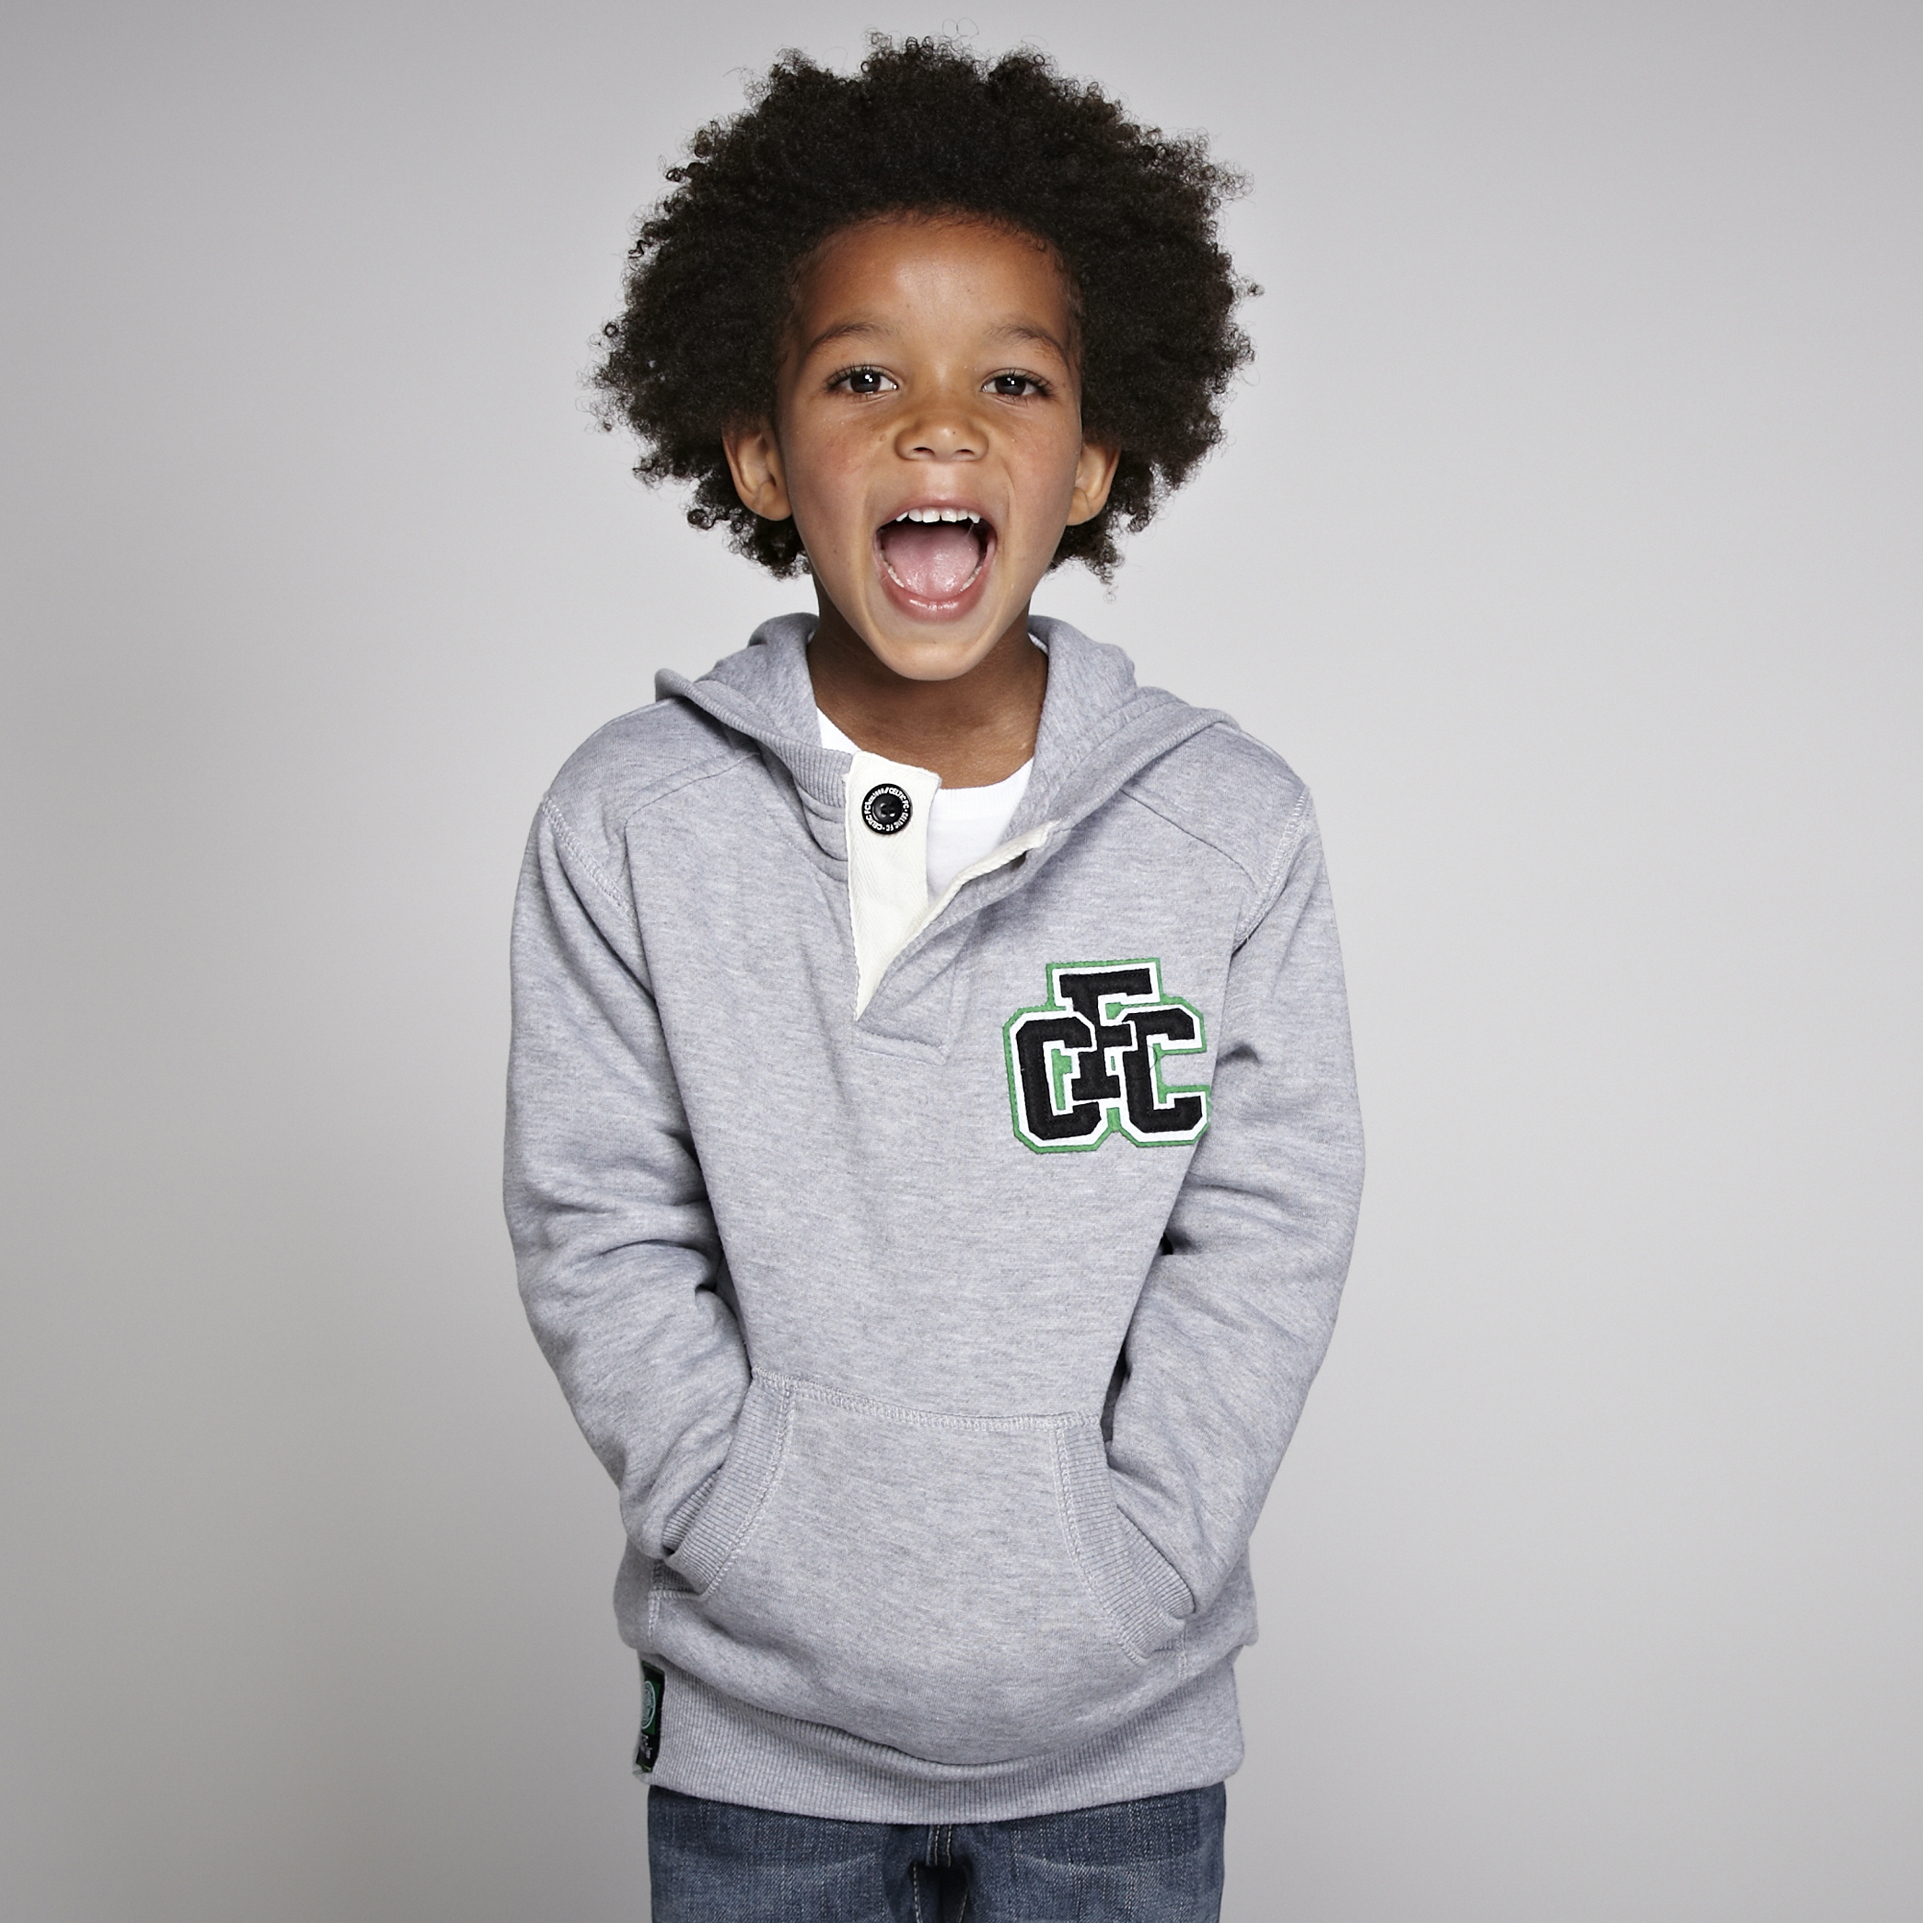 Celtic CFC Applique Hoody - Grey Marl - Boys